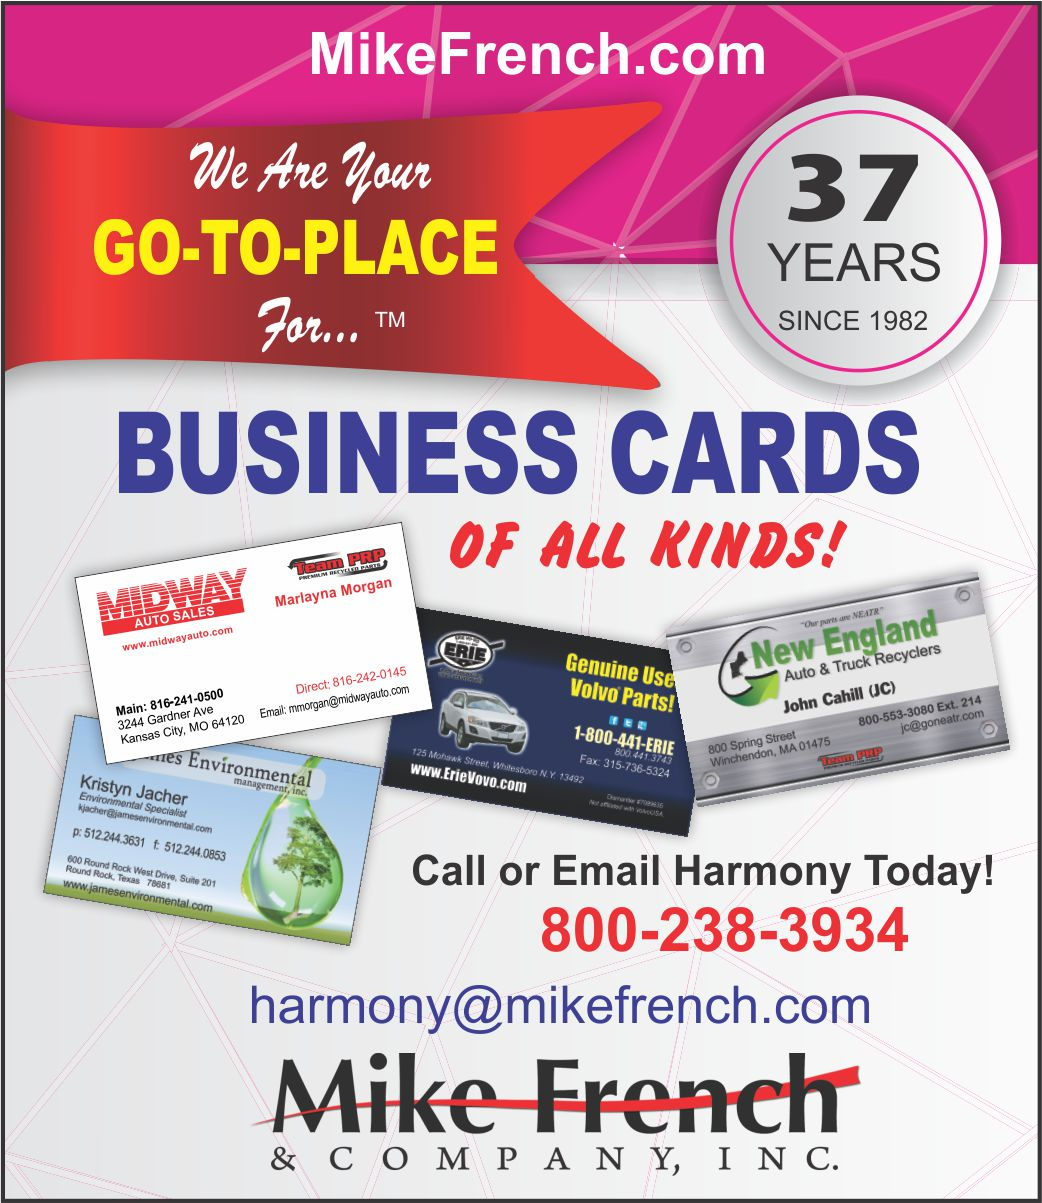 MF&CO - Business Cards.jpg